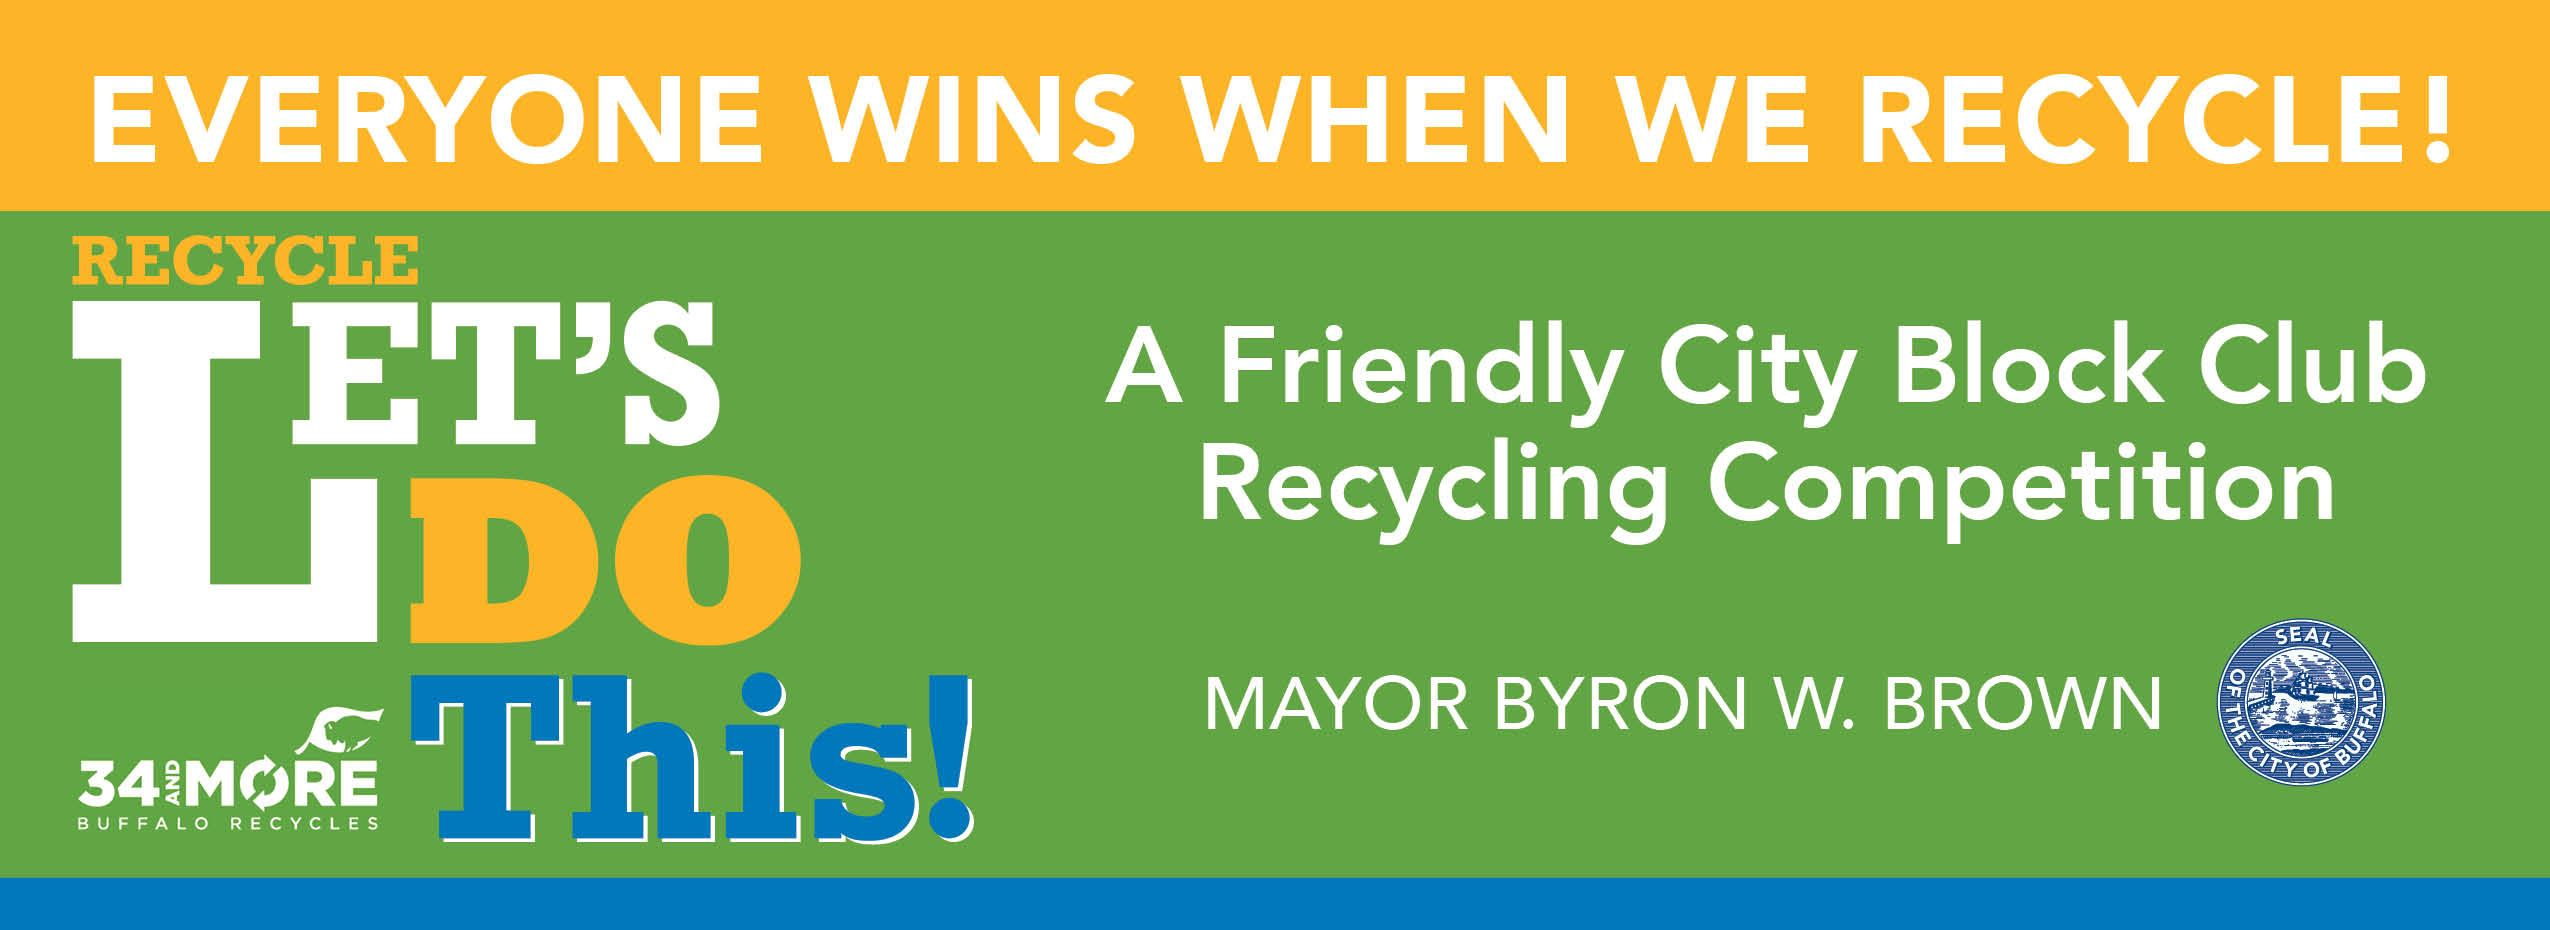 Lets Do This! A Friendly City Block Club Recycling Competition